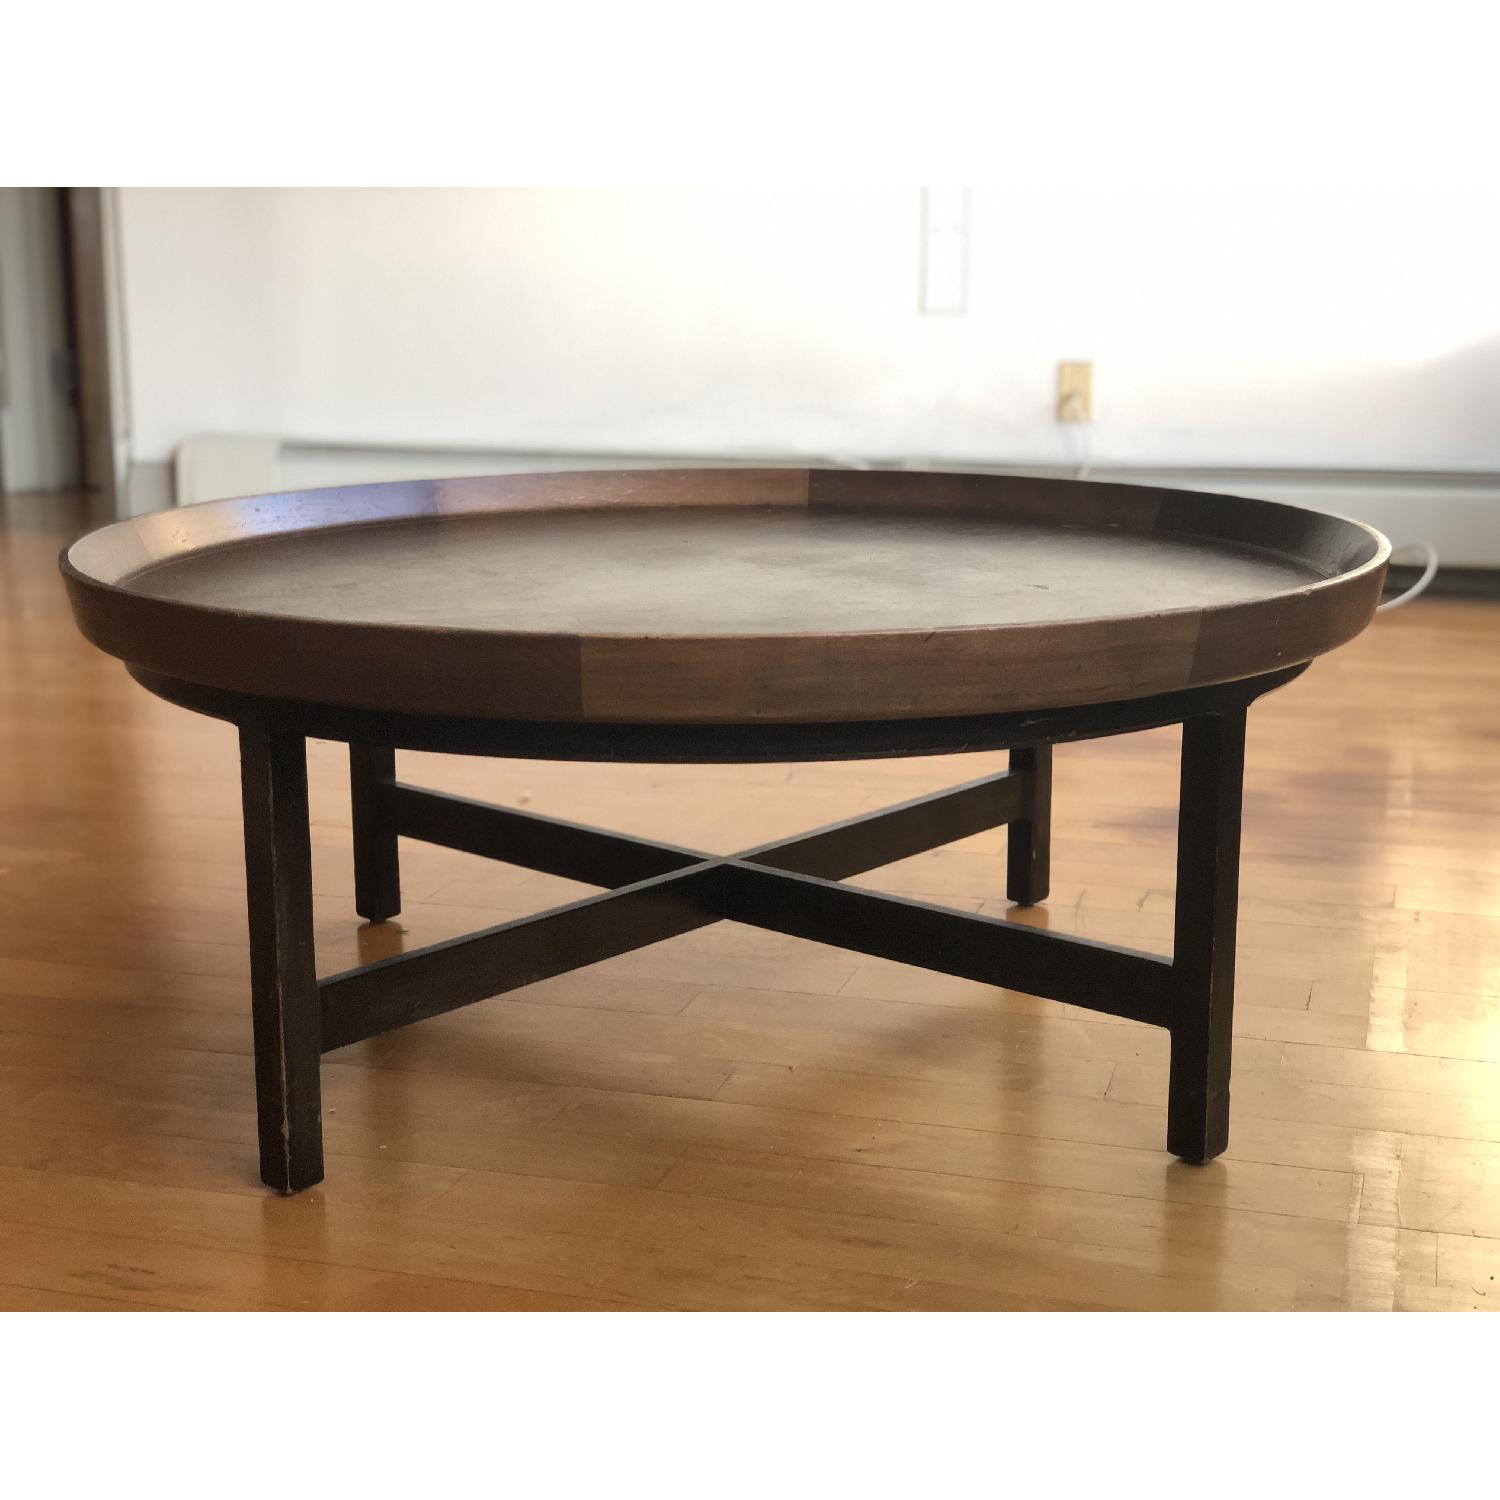 Antique Solid Wood Round Coffee Table - image-5